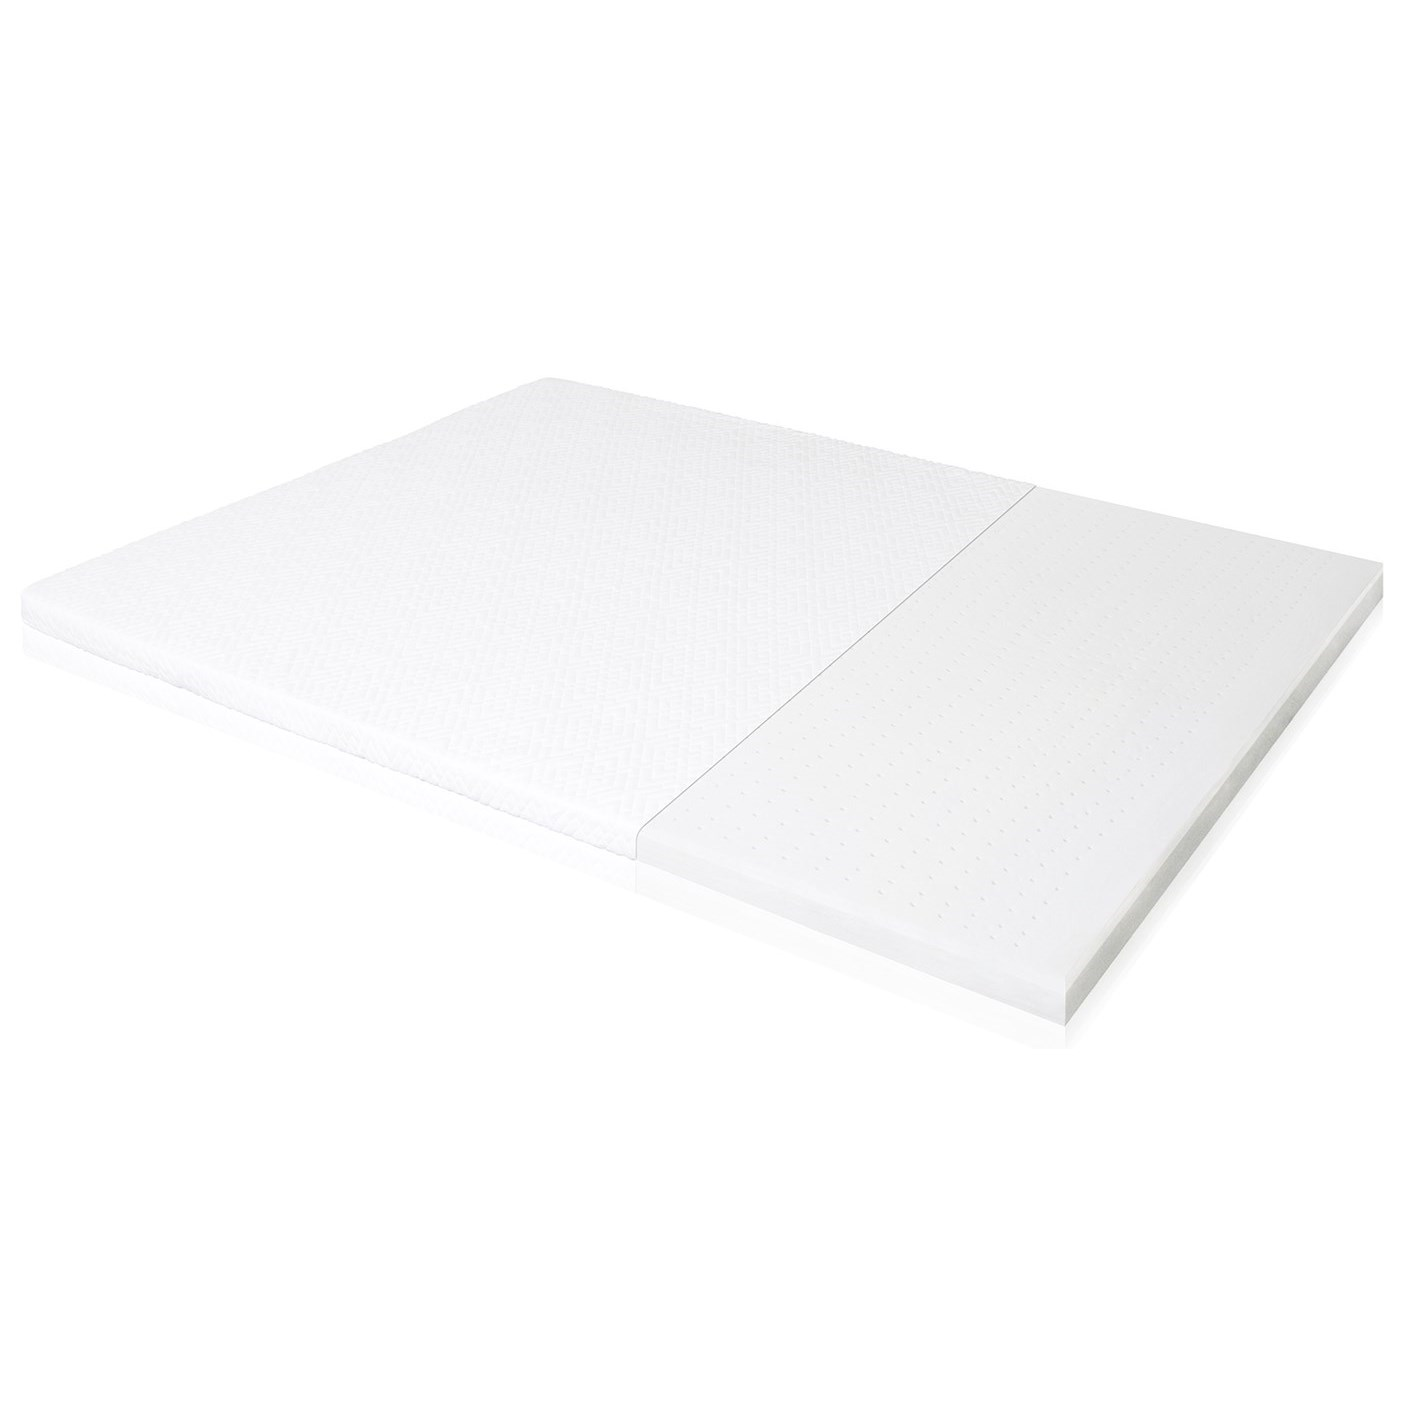 "Malouf Latex Foam King 2"" Latex Foam Mattress Topper - Item Number: IS20KK65LT"